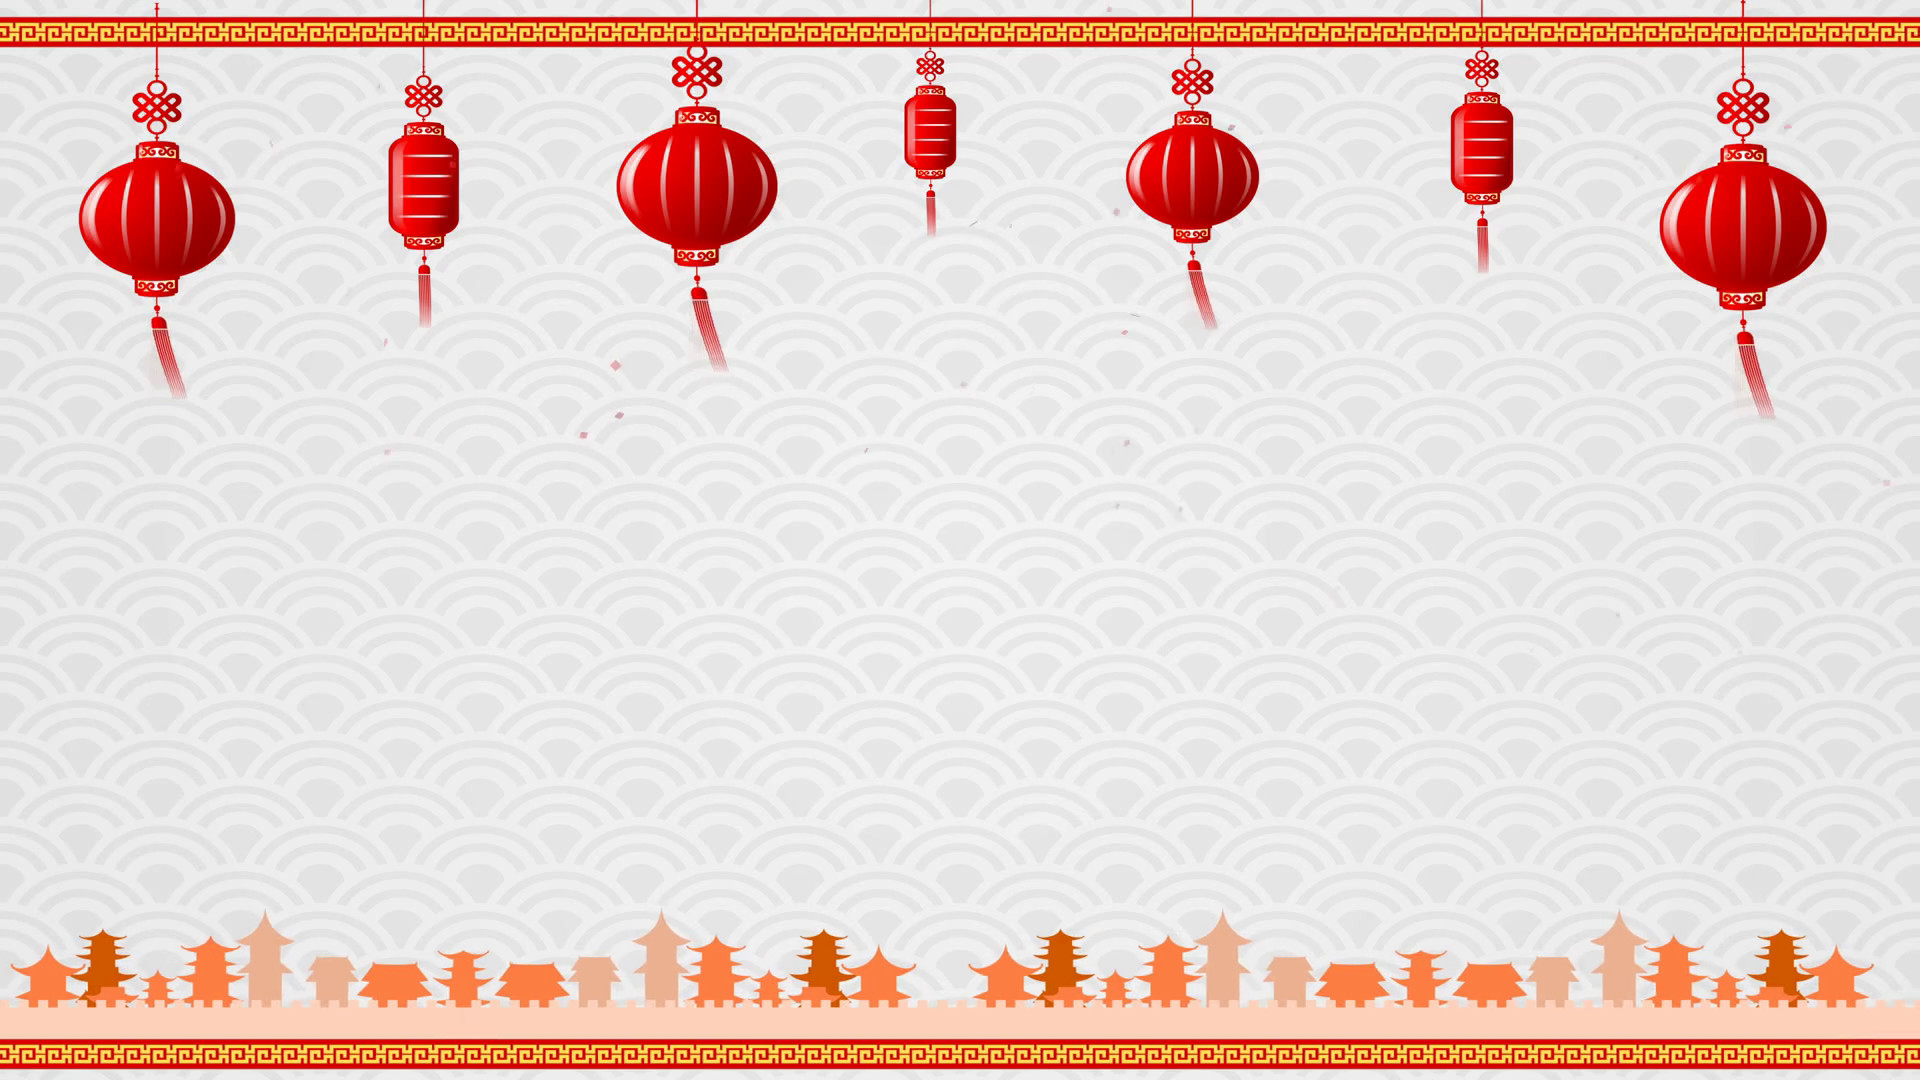 1920x1080 Chinese Art Background And Red Lantern With Moving Border With Copy Space  And Loop Motion Background - Storyblocks Video